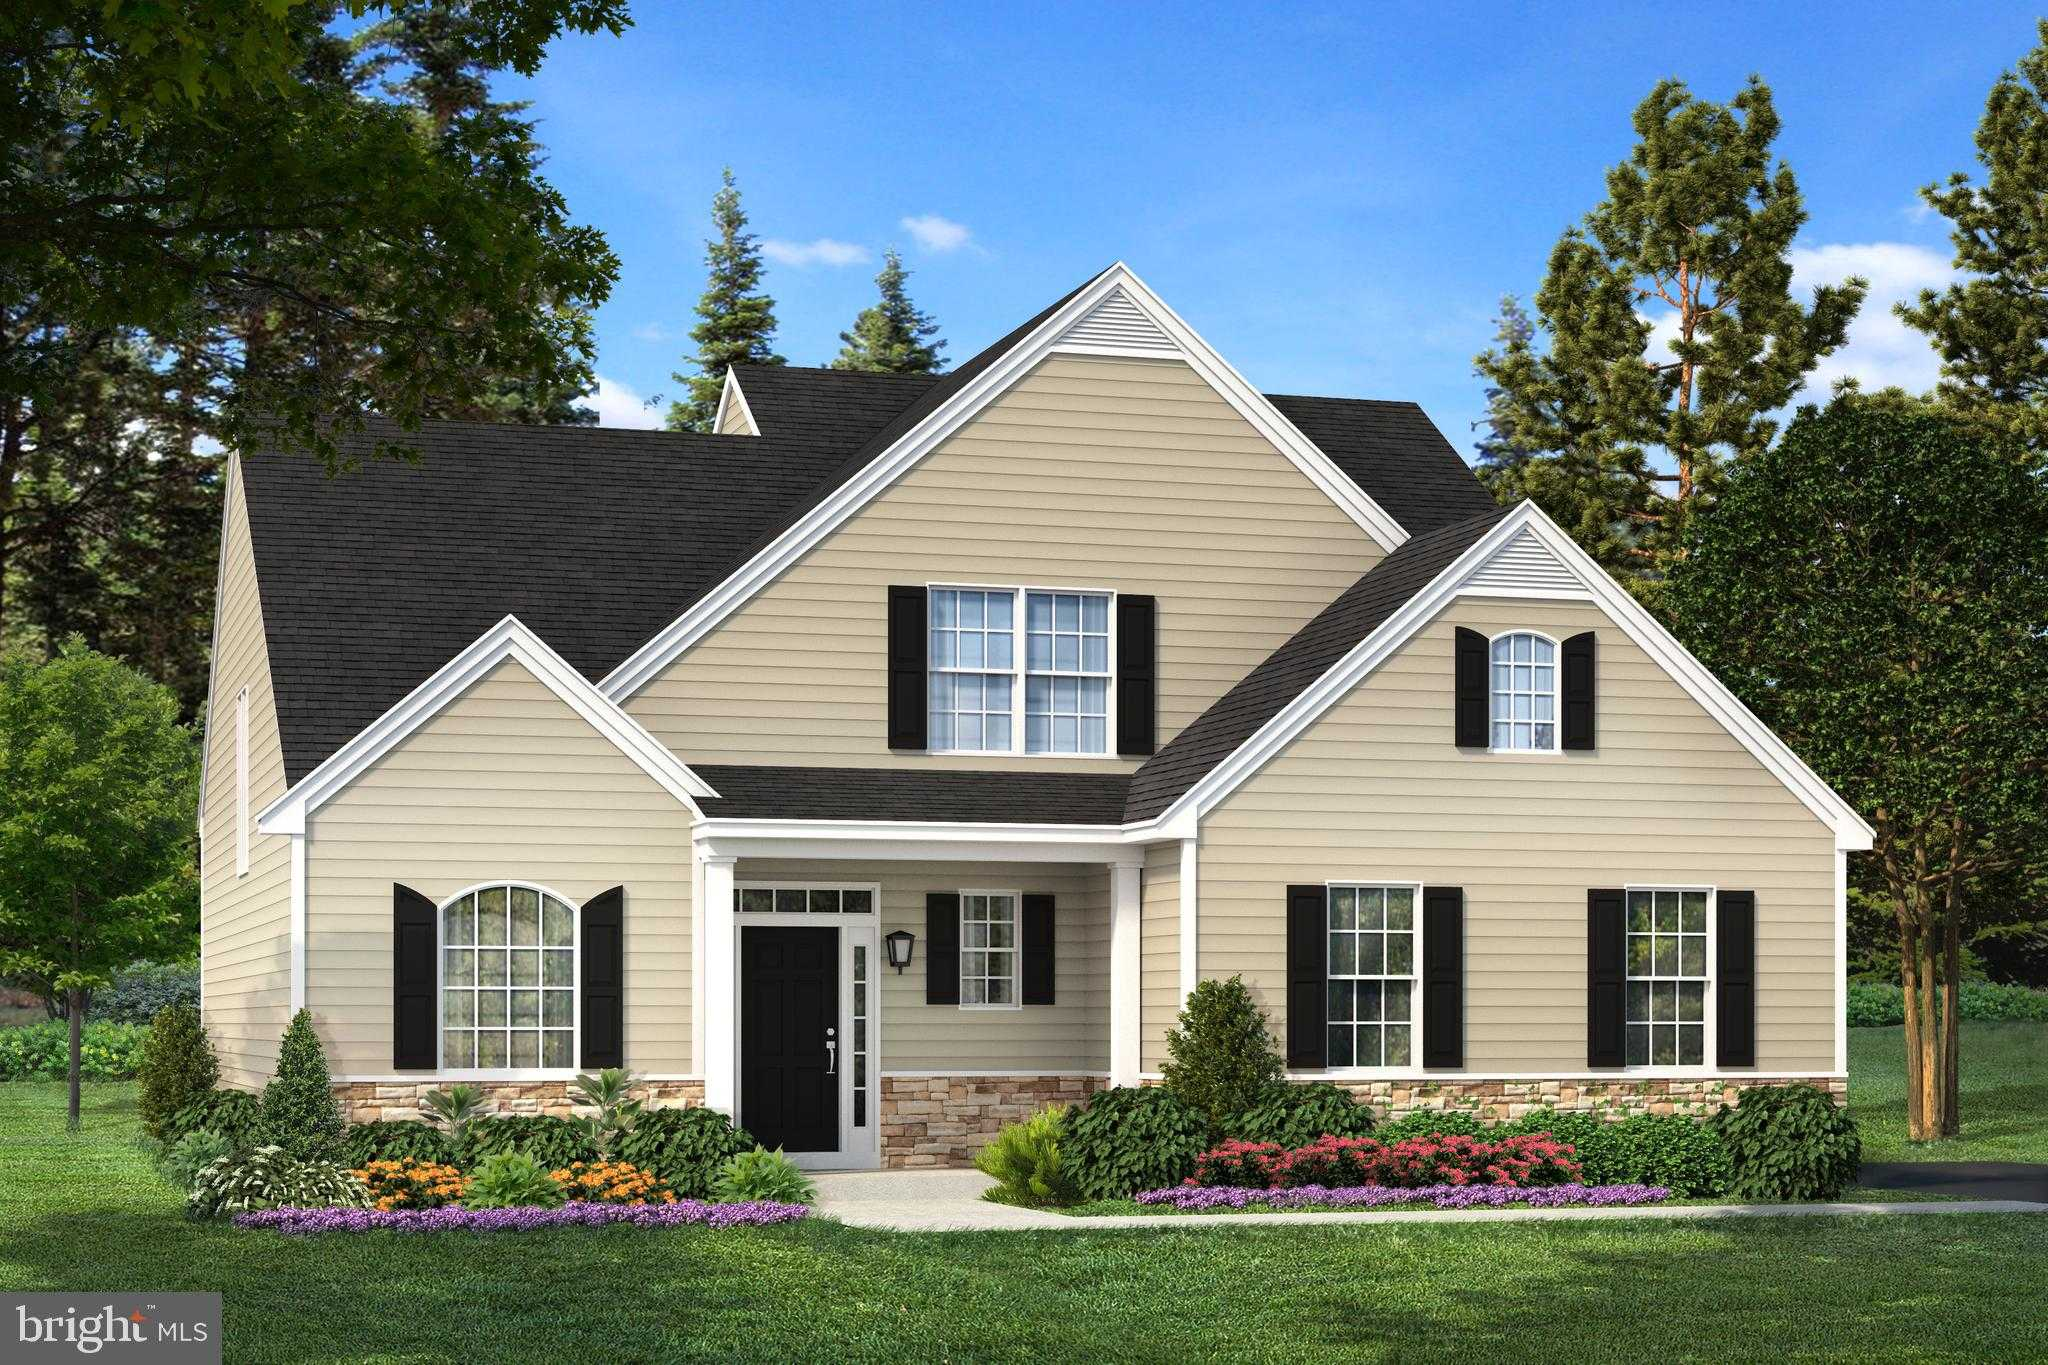 $464,800 - 3Br/3Ba -  for Sale in Enclave At Wyncote, Oxford